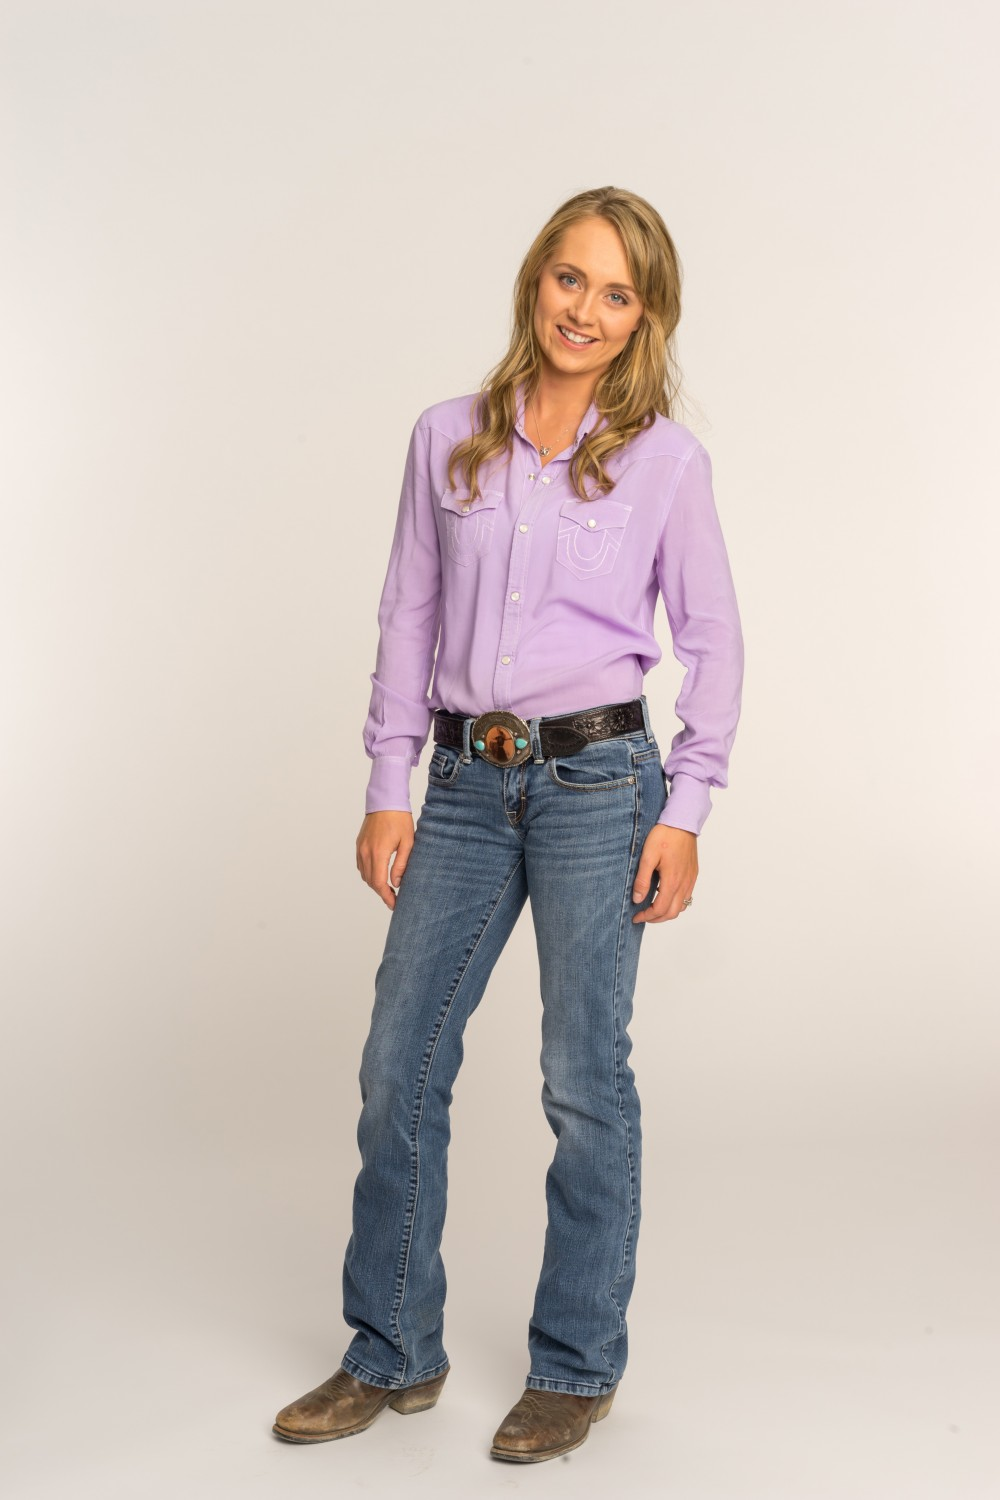 Image result for AMBER MARSHALL